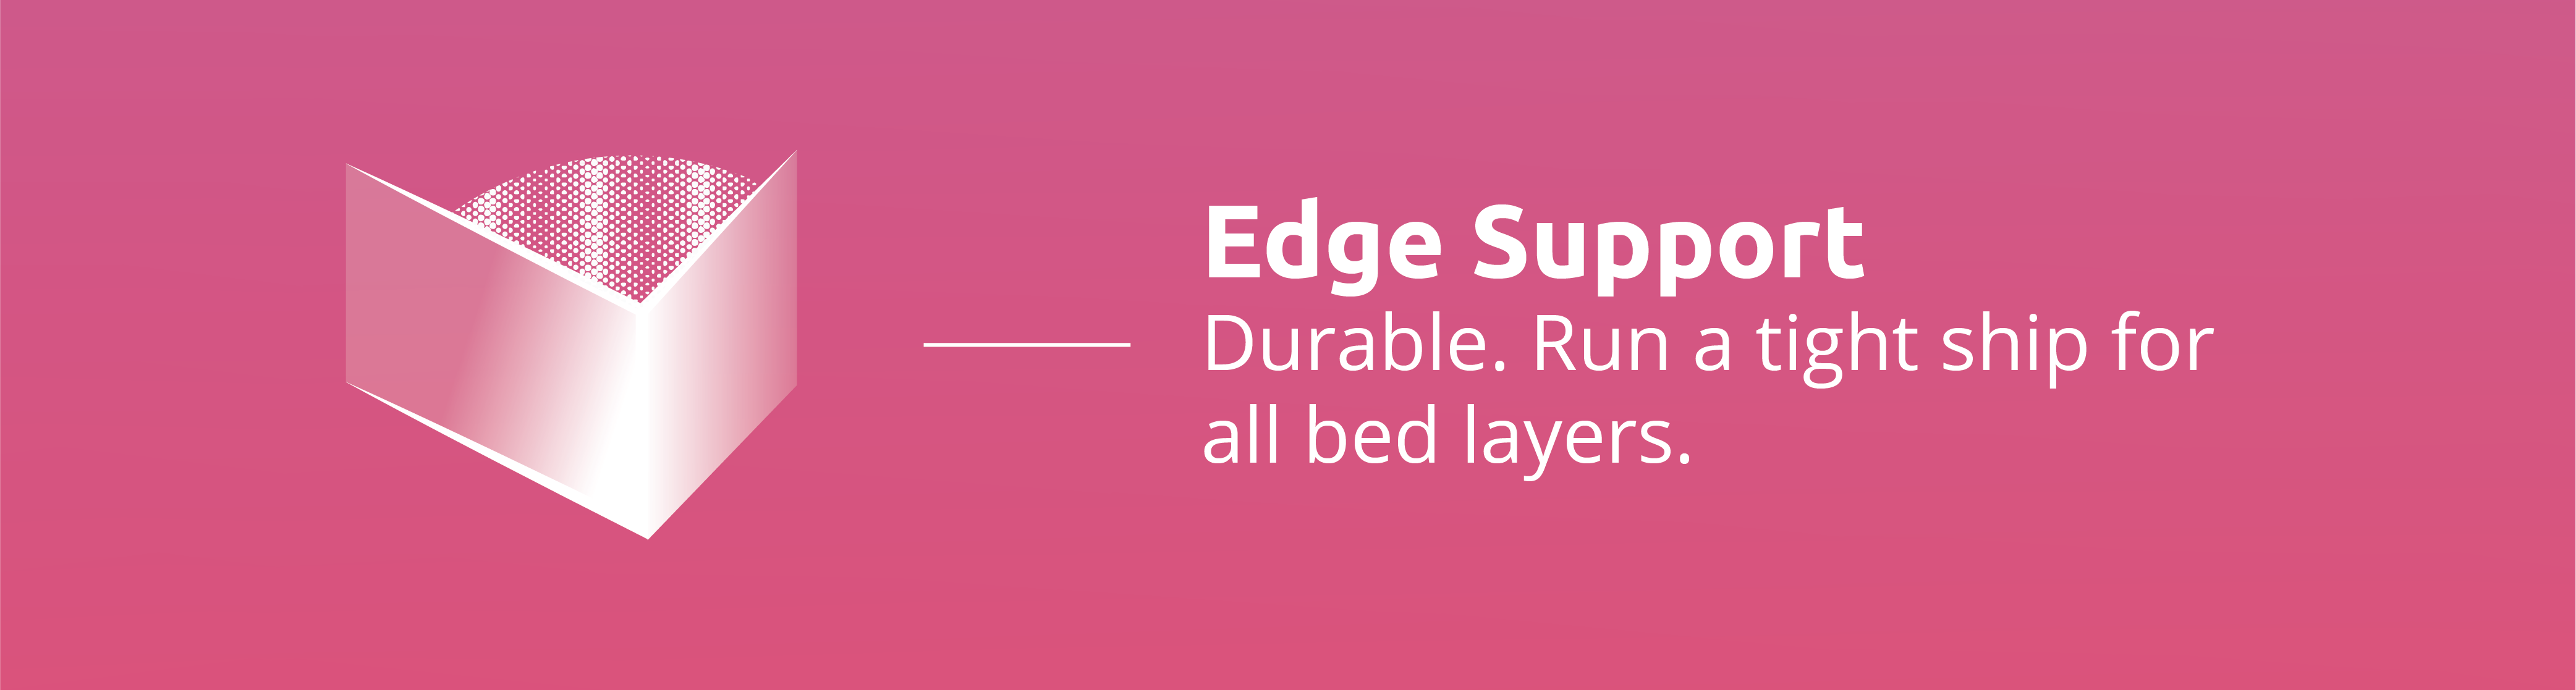 Edge Support In Bed Infographic